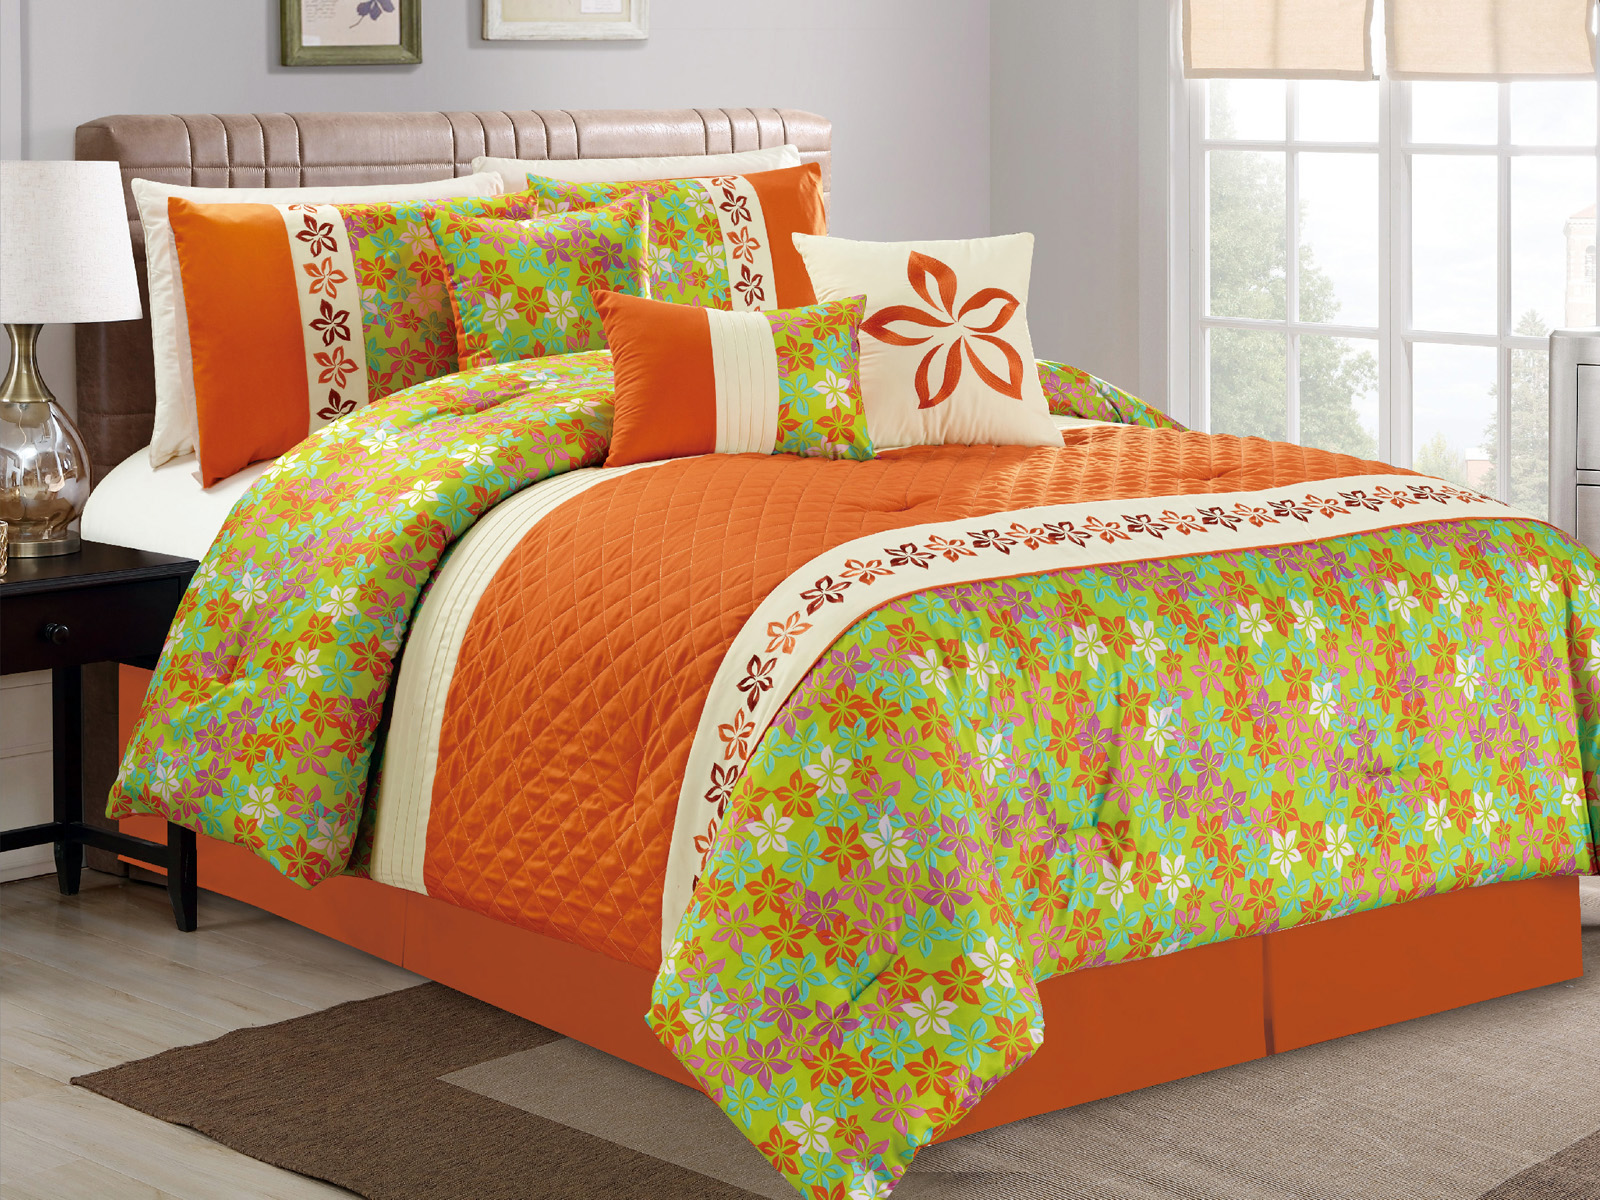 7P Quilted Diamond Floral Embroidery Flock Comforter Set